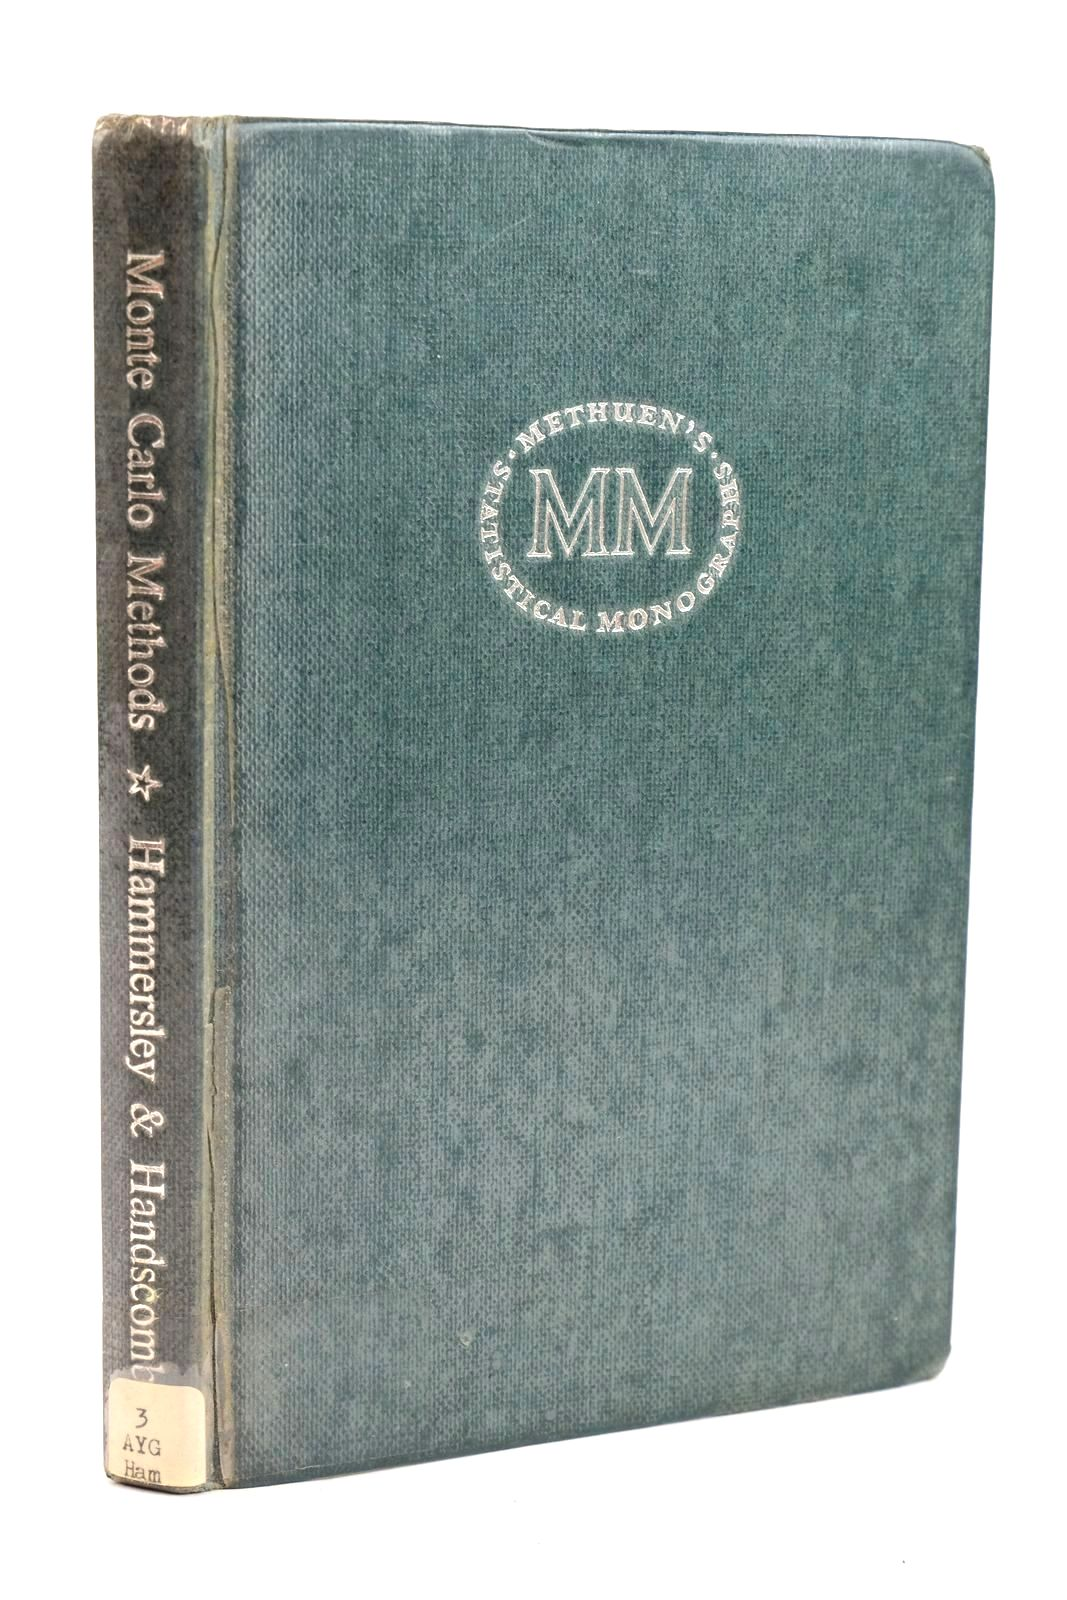 Photo of MONTE CARLO METHODS written by Hammersley, J.M. Handscomb, D.C. published by Methuen & Co. Ltd. (STOCK CODE: 1319607)  for sale by Stella & Rose's Books